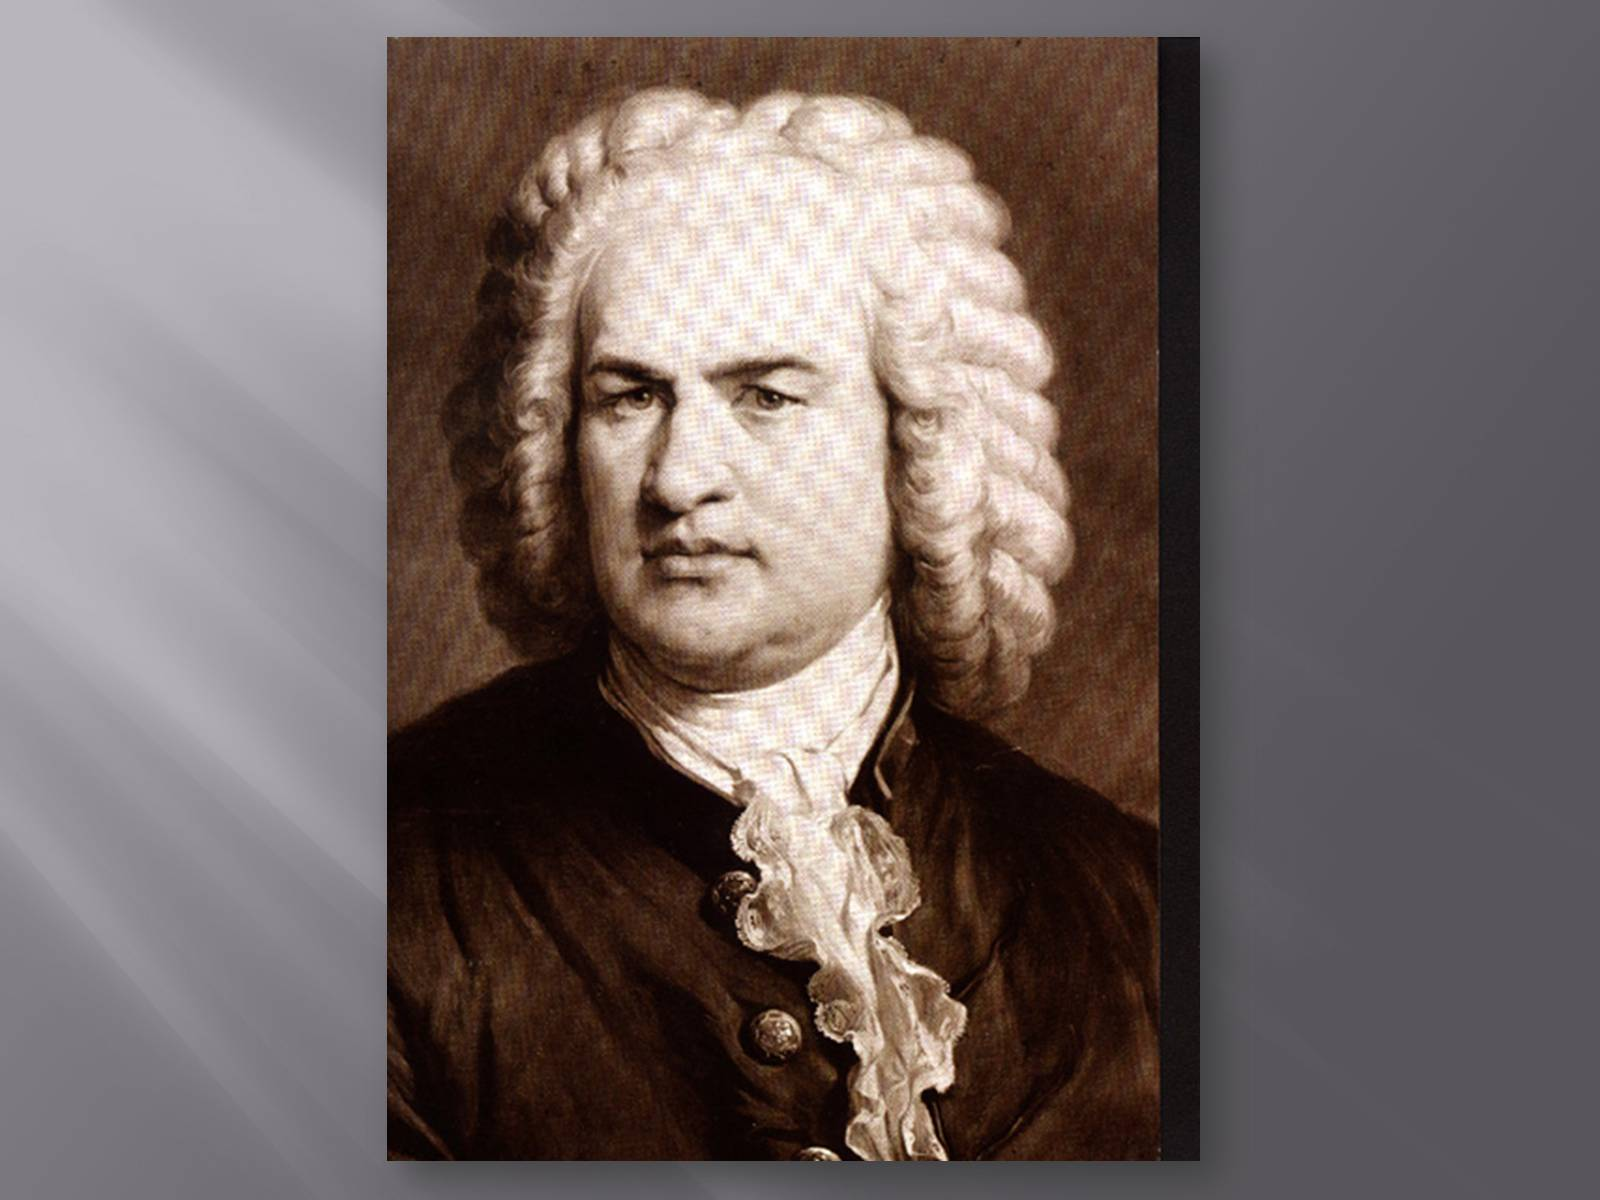 biography on johann sebastian bach essay On january 24, 1722 bach's sister maria, together with one of the lämmerhirts, challenged the will, saying that bach and his brothers johann jacob bach (in sweden) and johann christoph bach (at ohrdruf) agreed with them (johann christoph bach had died in 1721.